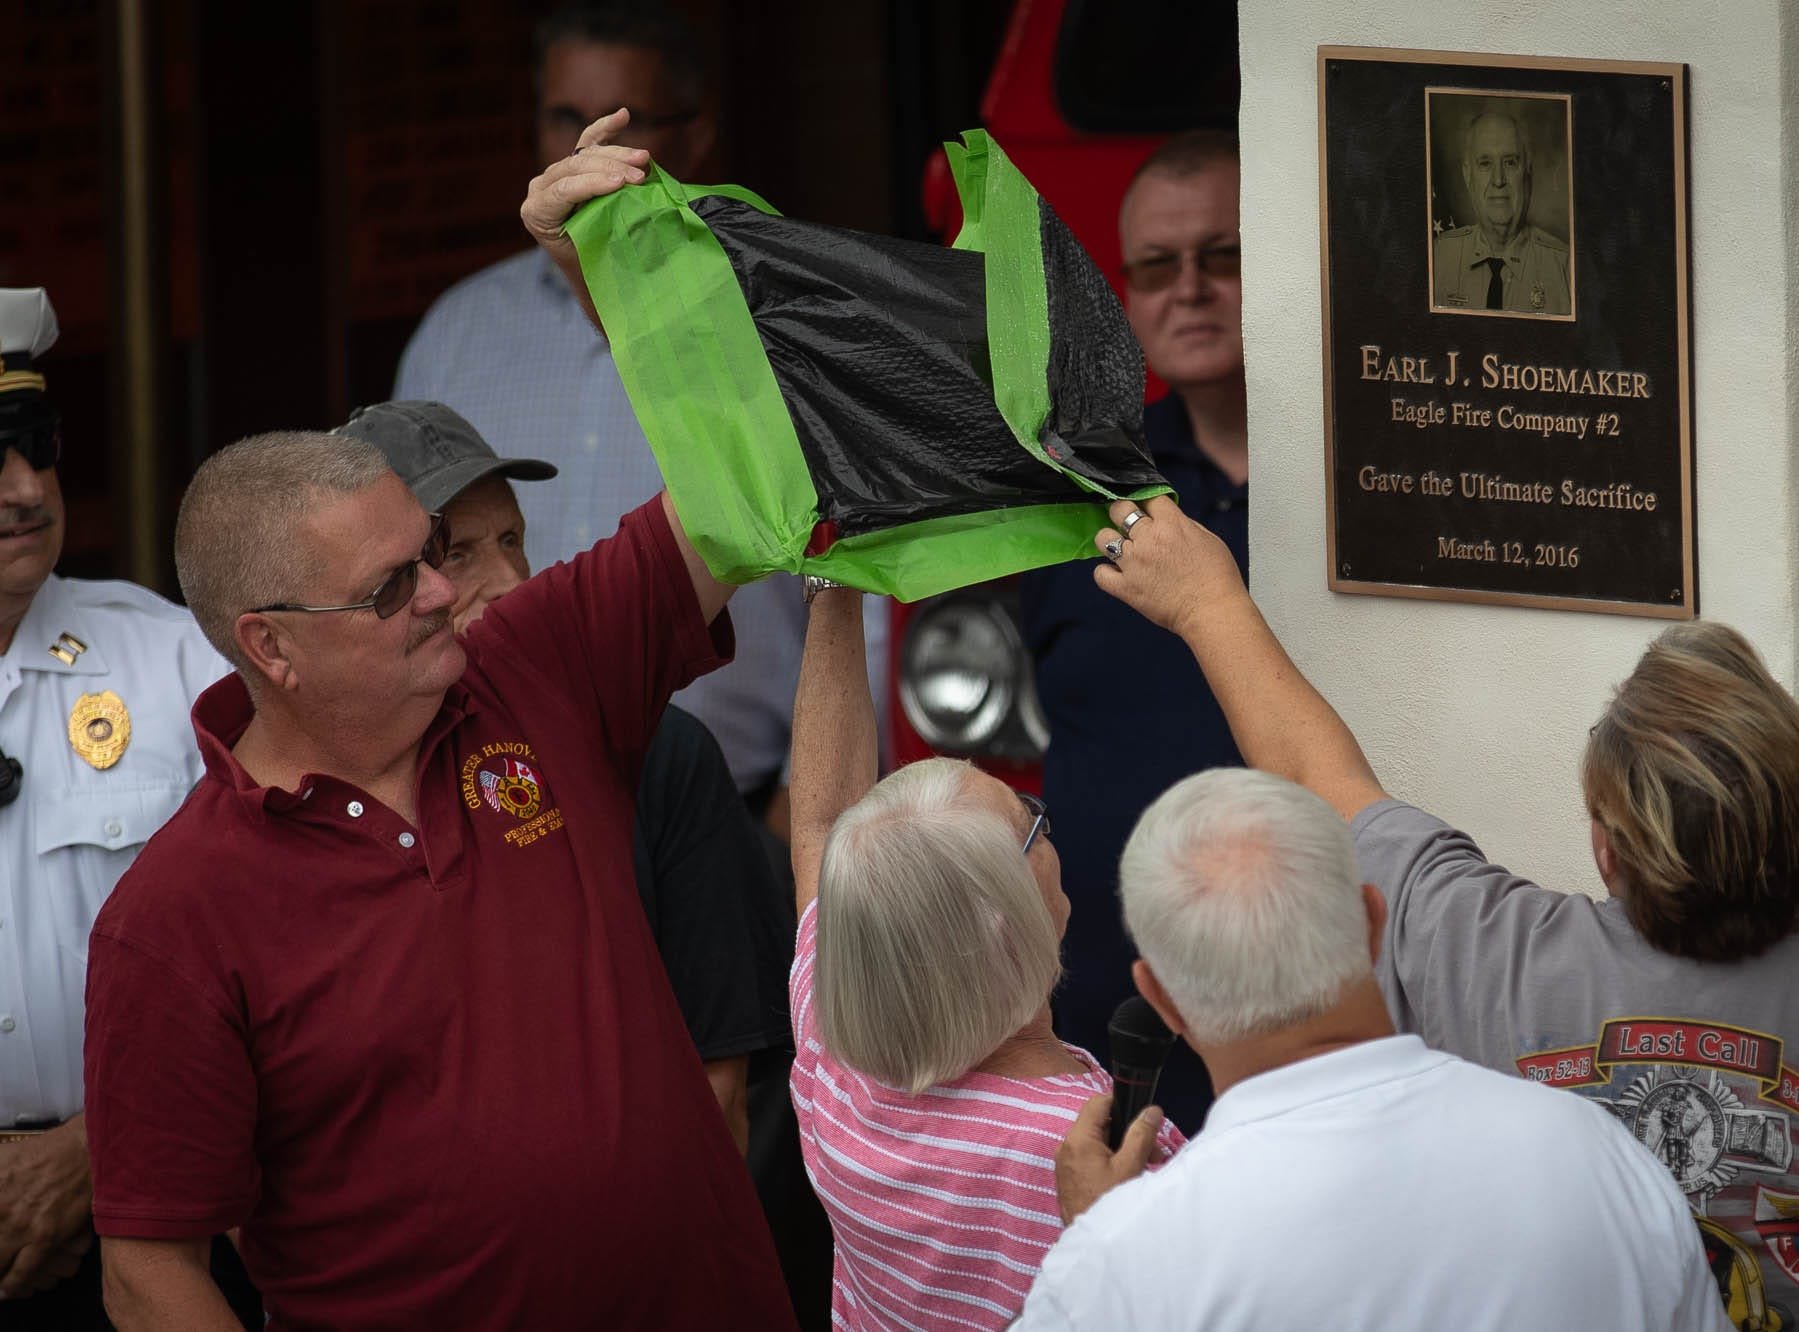 Firefighter Jim Startzel and Theresa Shoemaker, wife of fallen firefighter Earl Shoemaker, unveil a plaque in remembrance of Shoemaker during the dedication ceremony for the new Greater Hanover Area Fire Museum, Saturday, Sept. 1, 2018, in Hanover. Earl Shoemaker, a 43-year volunteer of Eagle Fire Company, died in the line of duty while responding to a structure fire March 12, 2016.